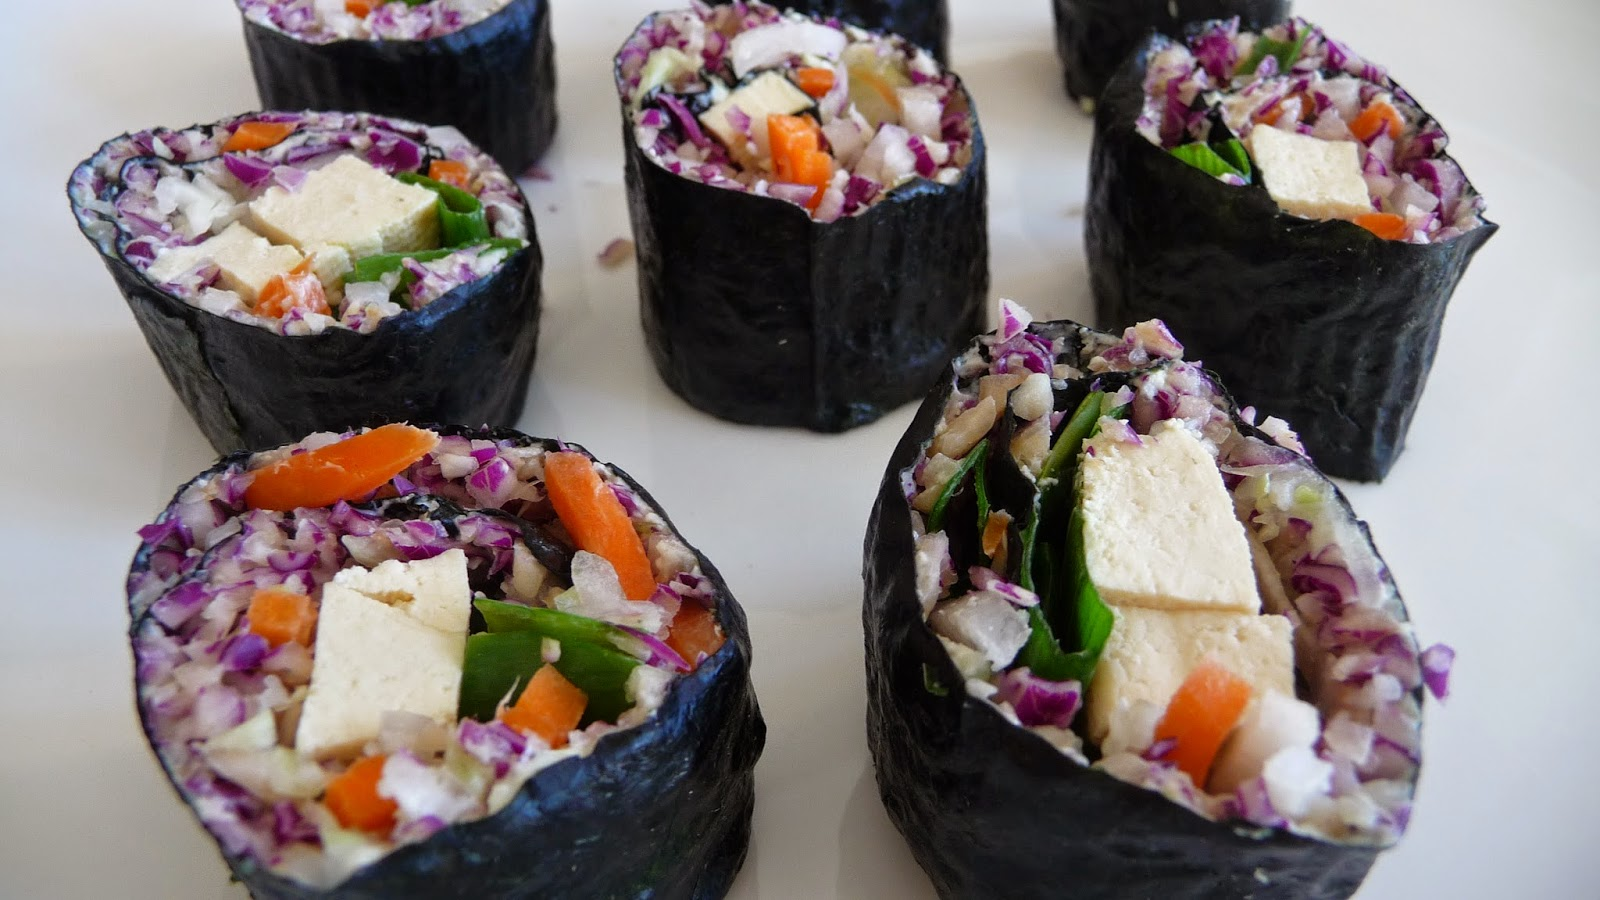 Riceless Sushi Rolls filled with Delicious Colorful Vegetables. A ...